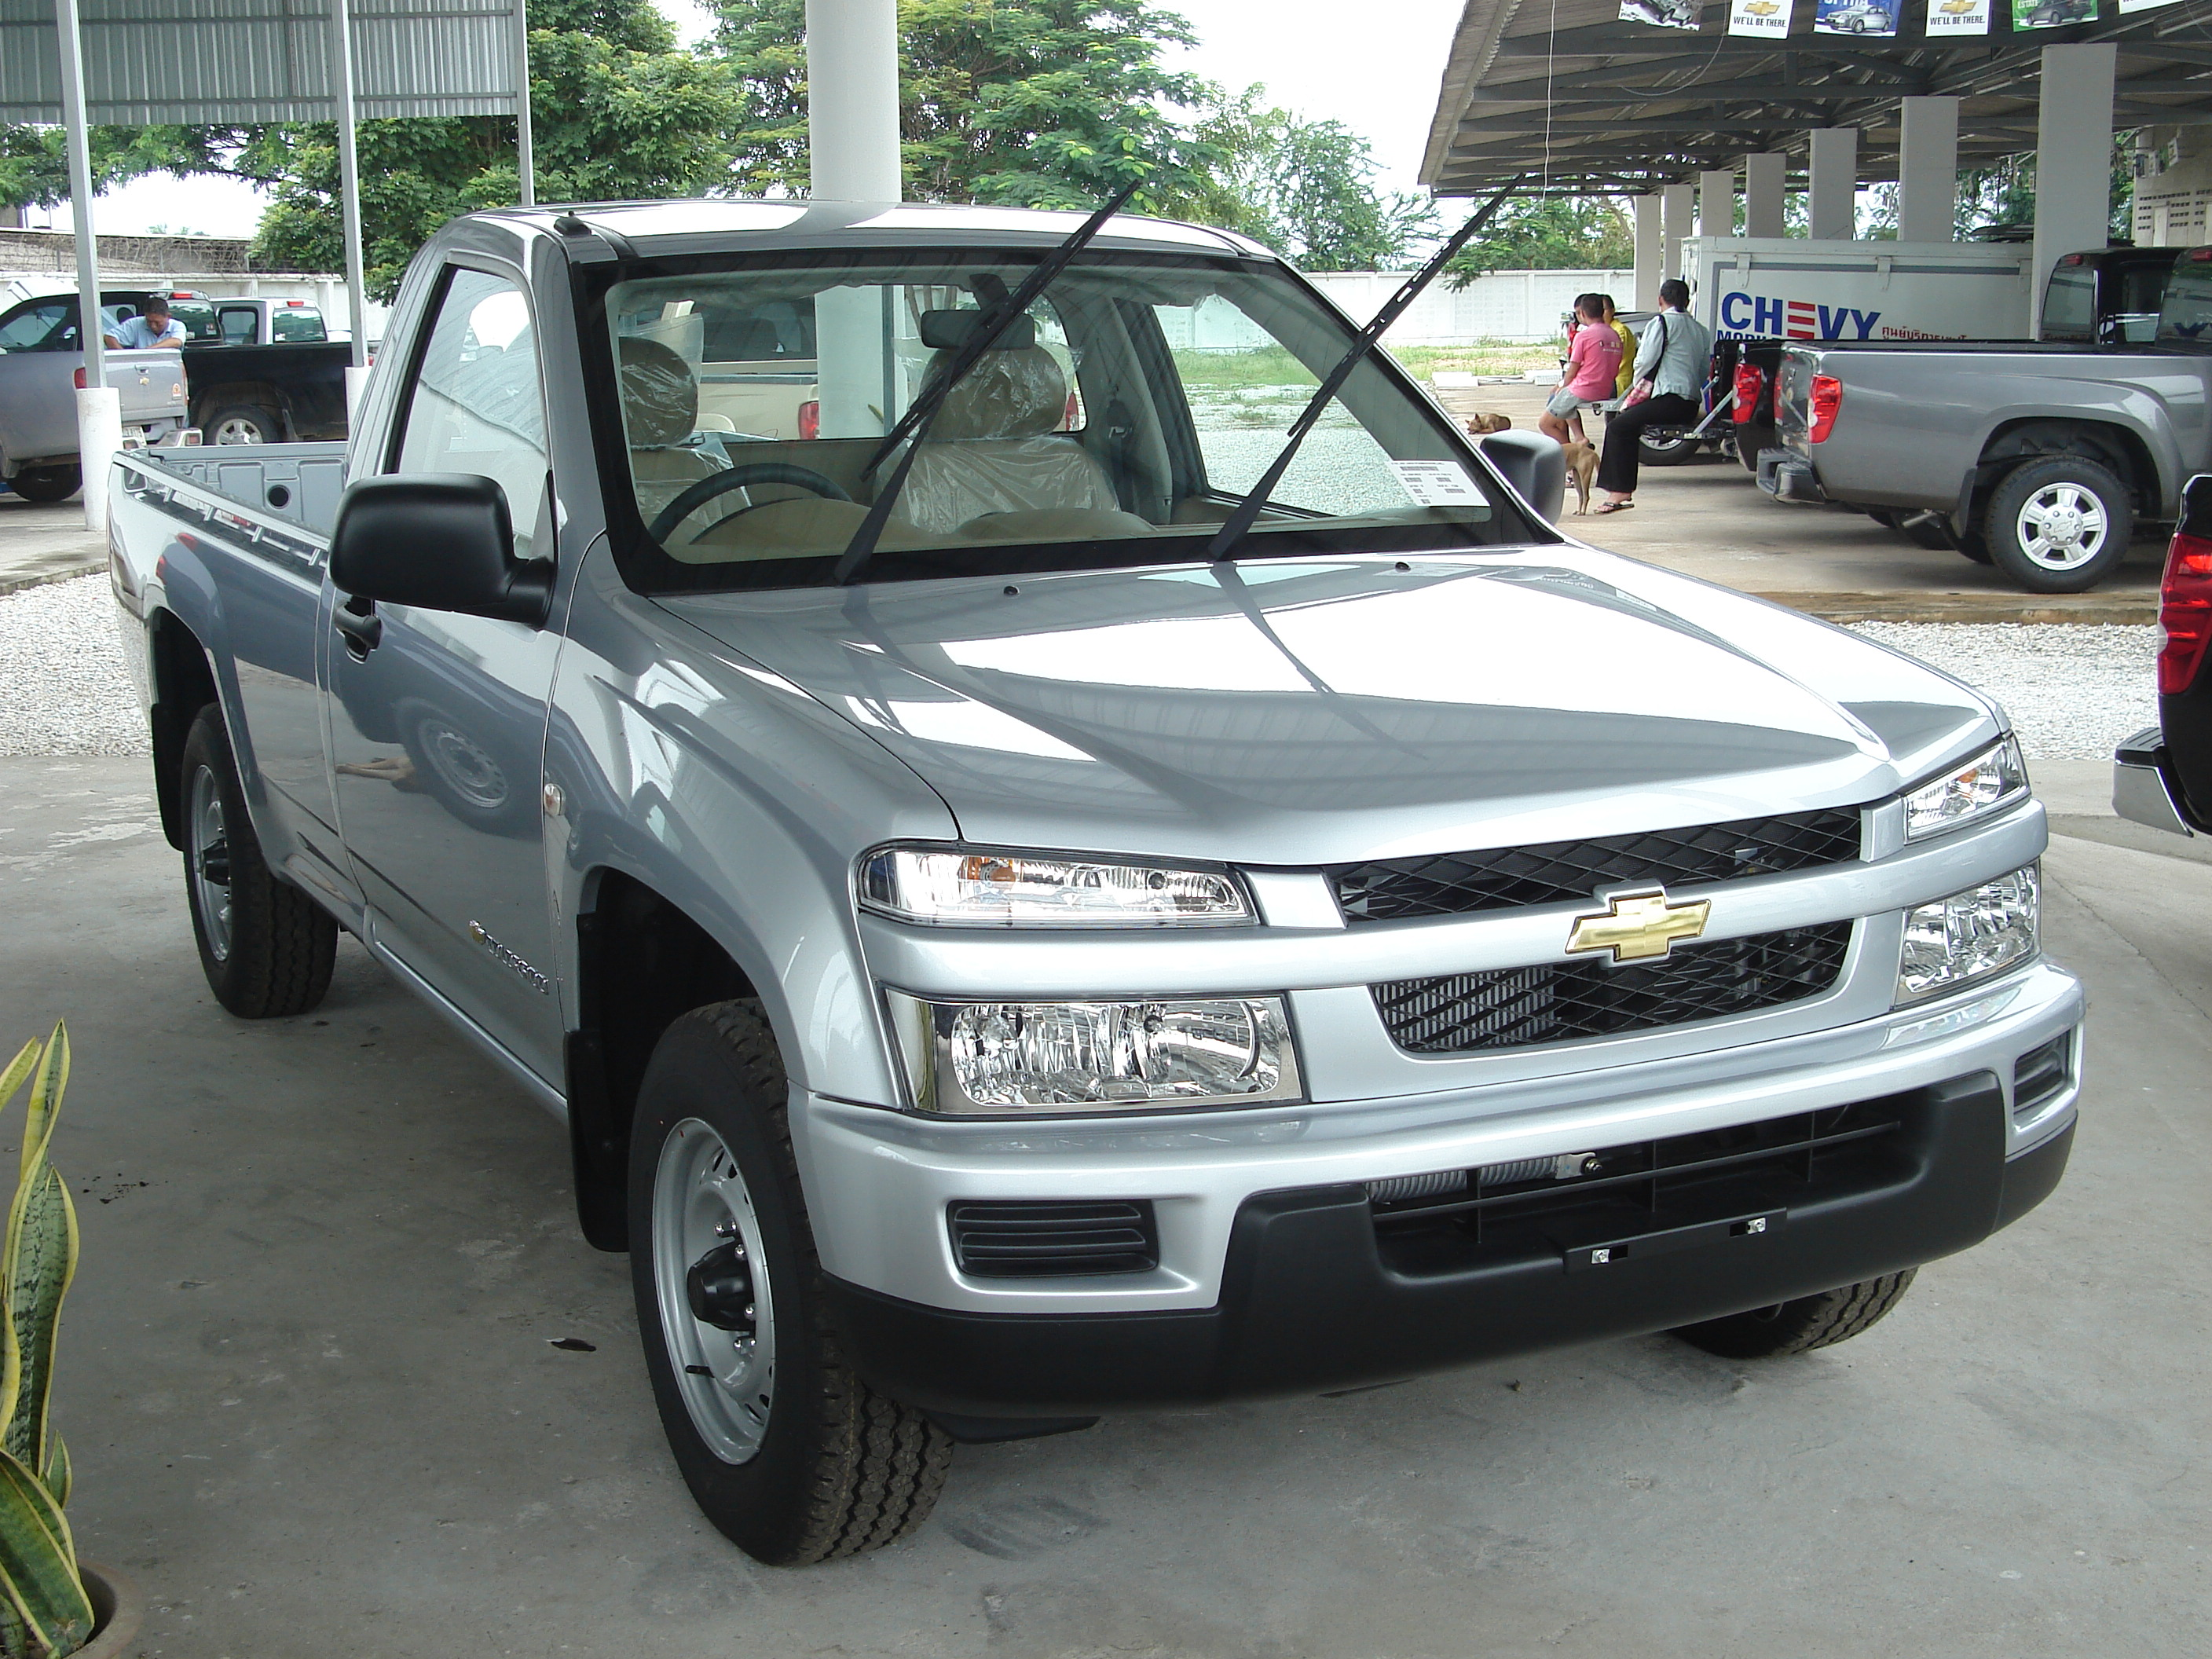 Chevrolet_Colorado_2.jpg